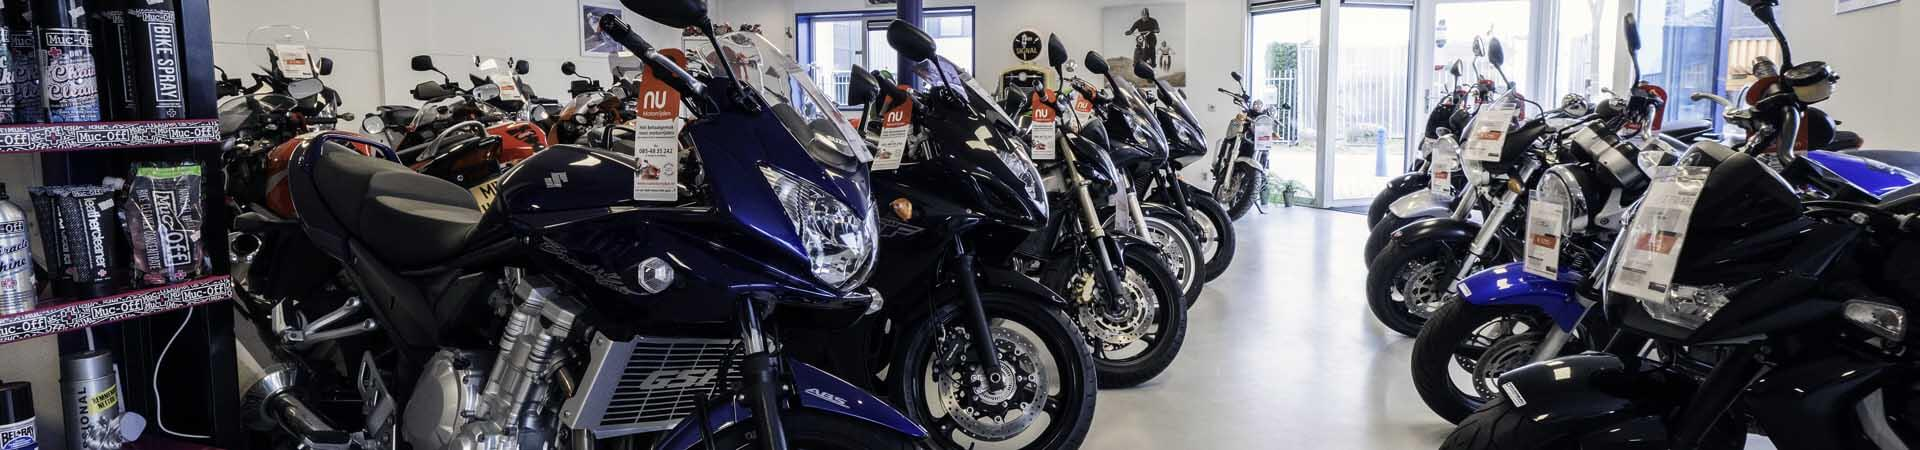 Domburg-motoren-showroom